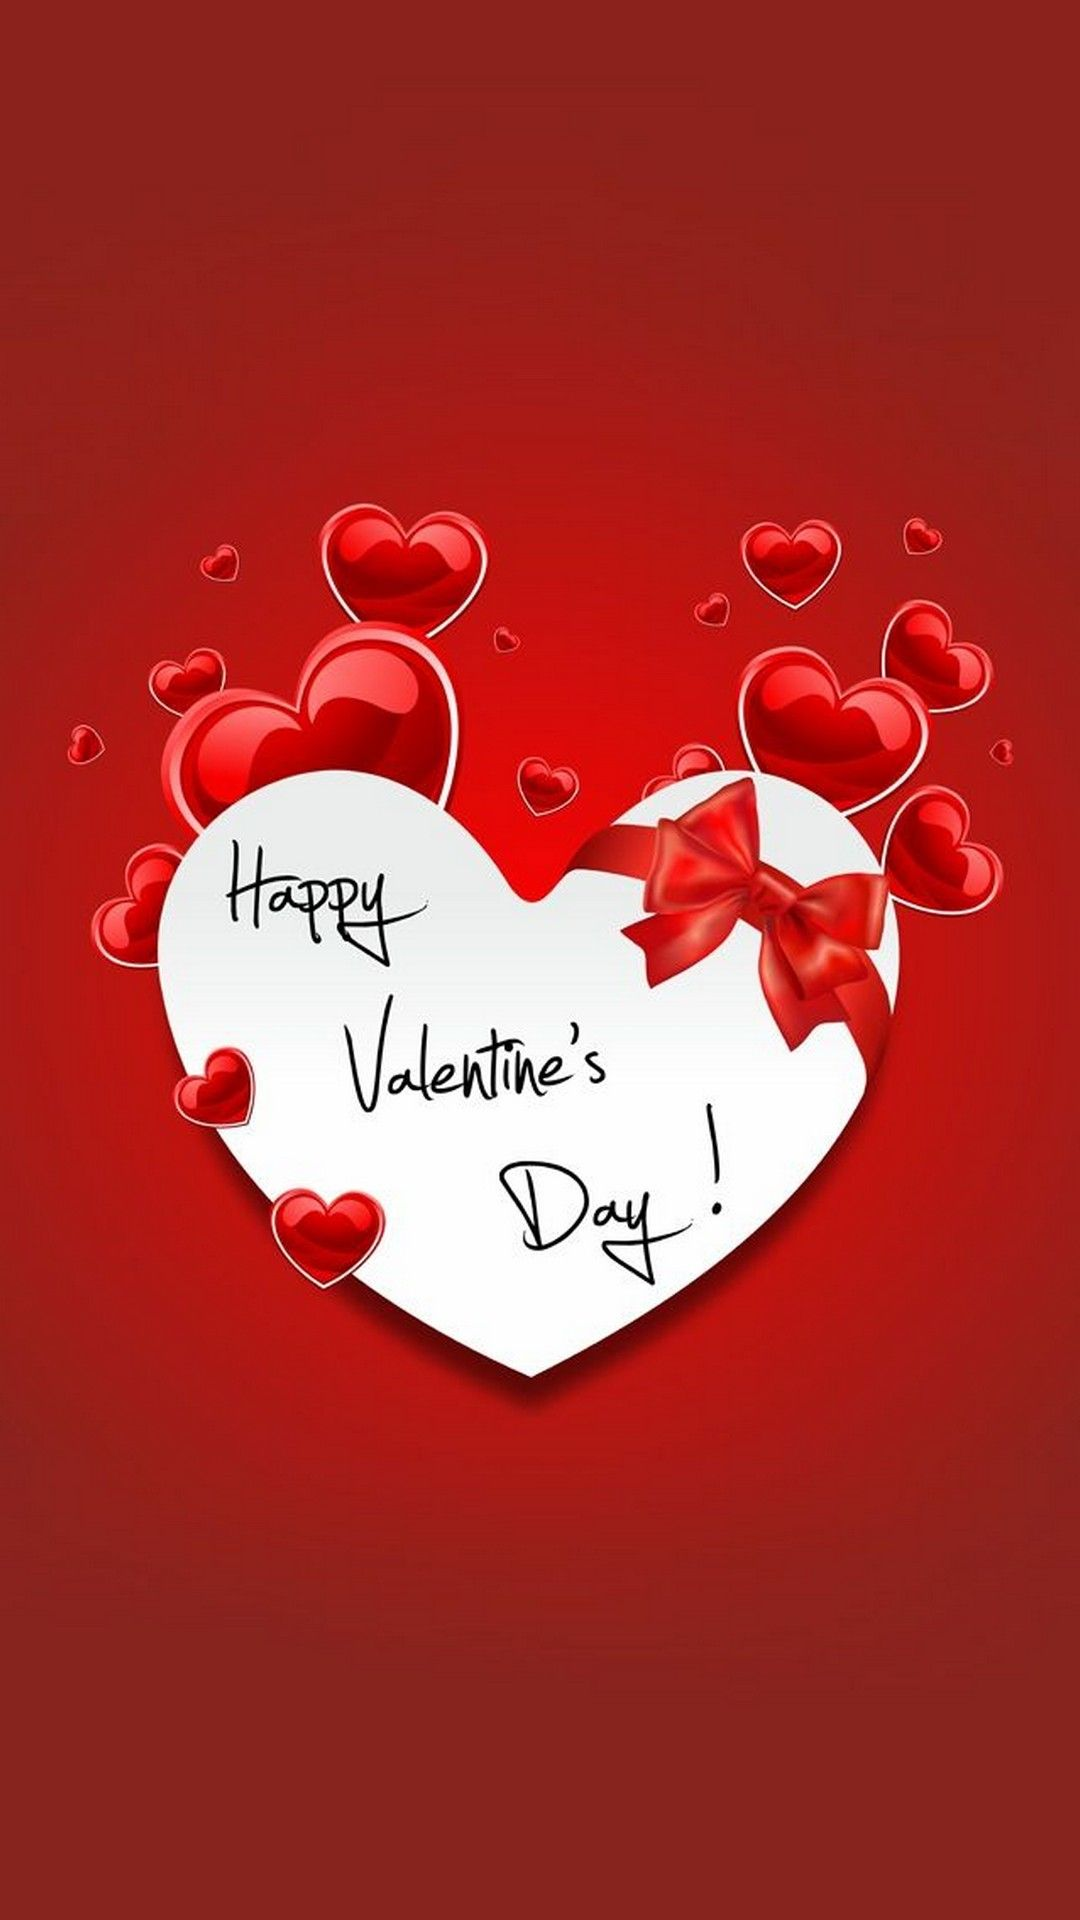 Wallpapers Happy Valentines Day Image Android